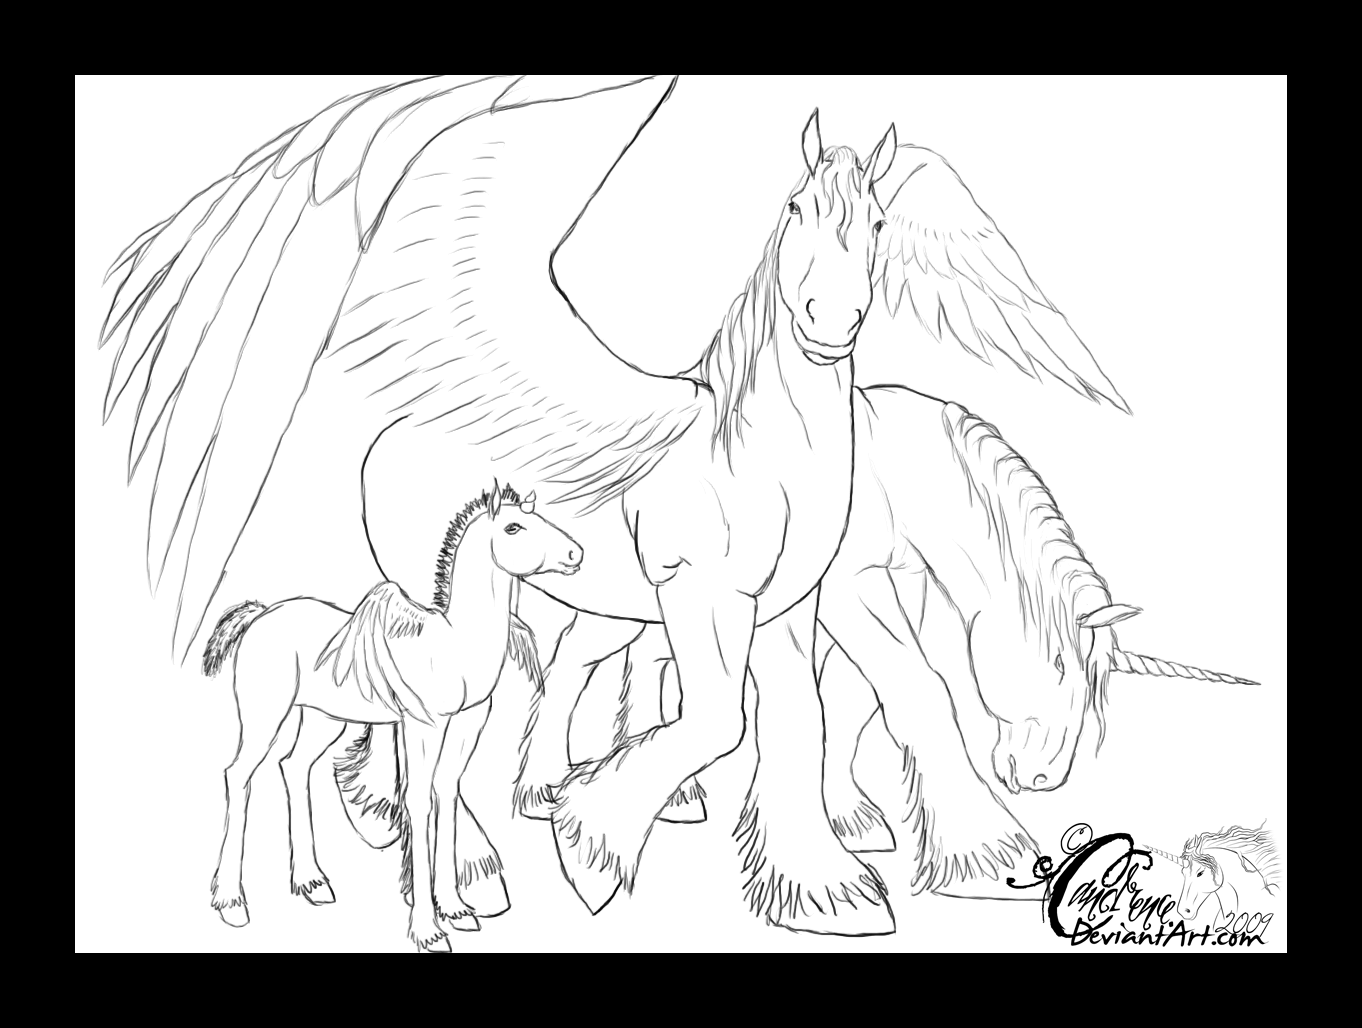 Pegasus Family Line Art By Candrence On Deviantart Line Art Art Coloring Book Pages [ 1028 x 1362 Pixel ]